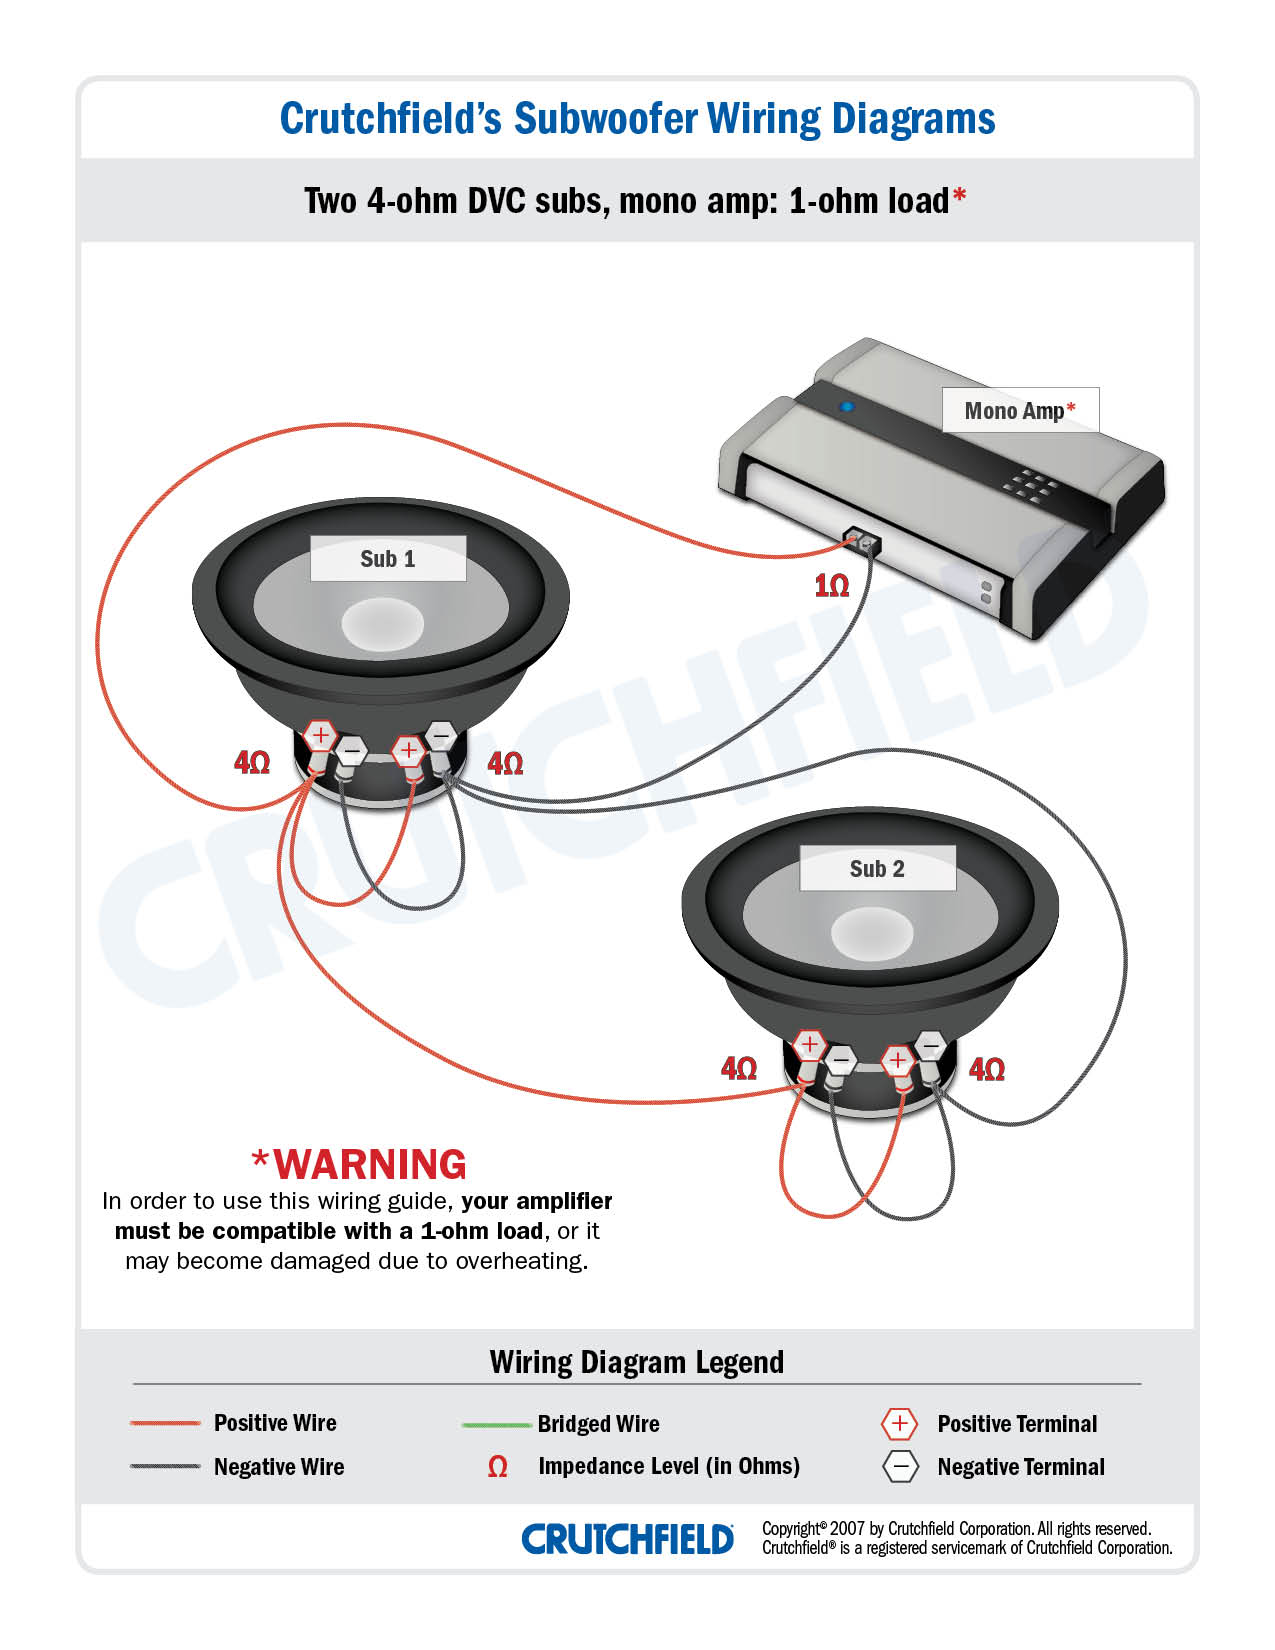 Subwoofer Wiring Diagrams How To Wire Your Subs Gm Aftermarket Stereo Diagram 16 Or A Ohm Load